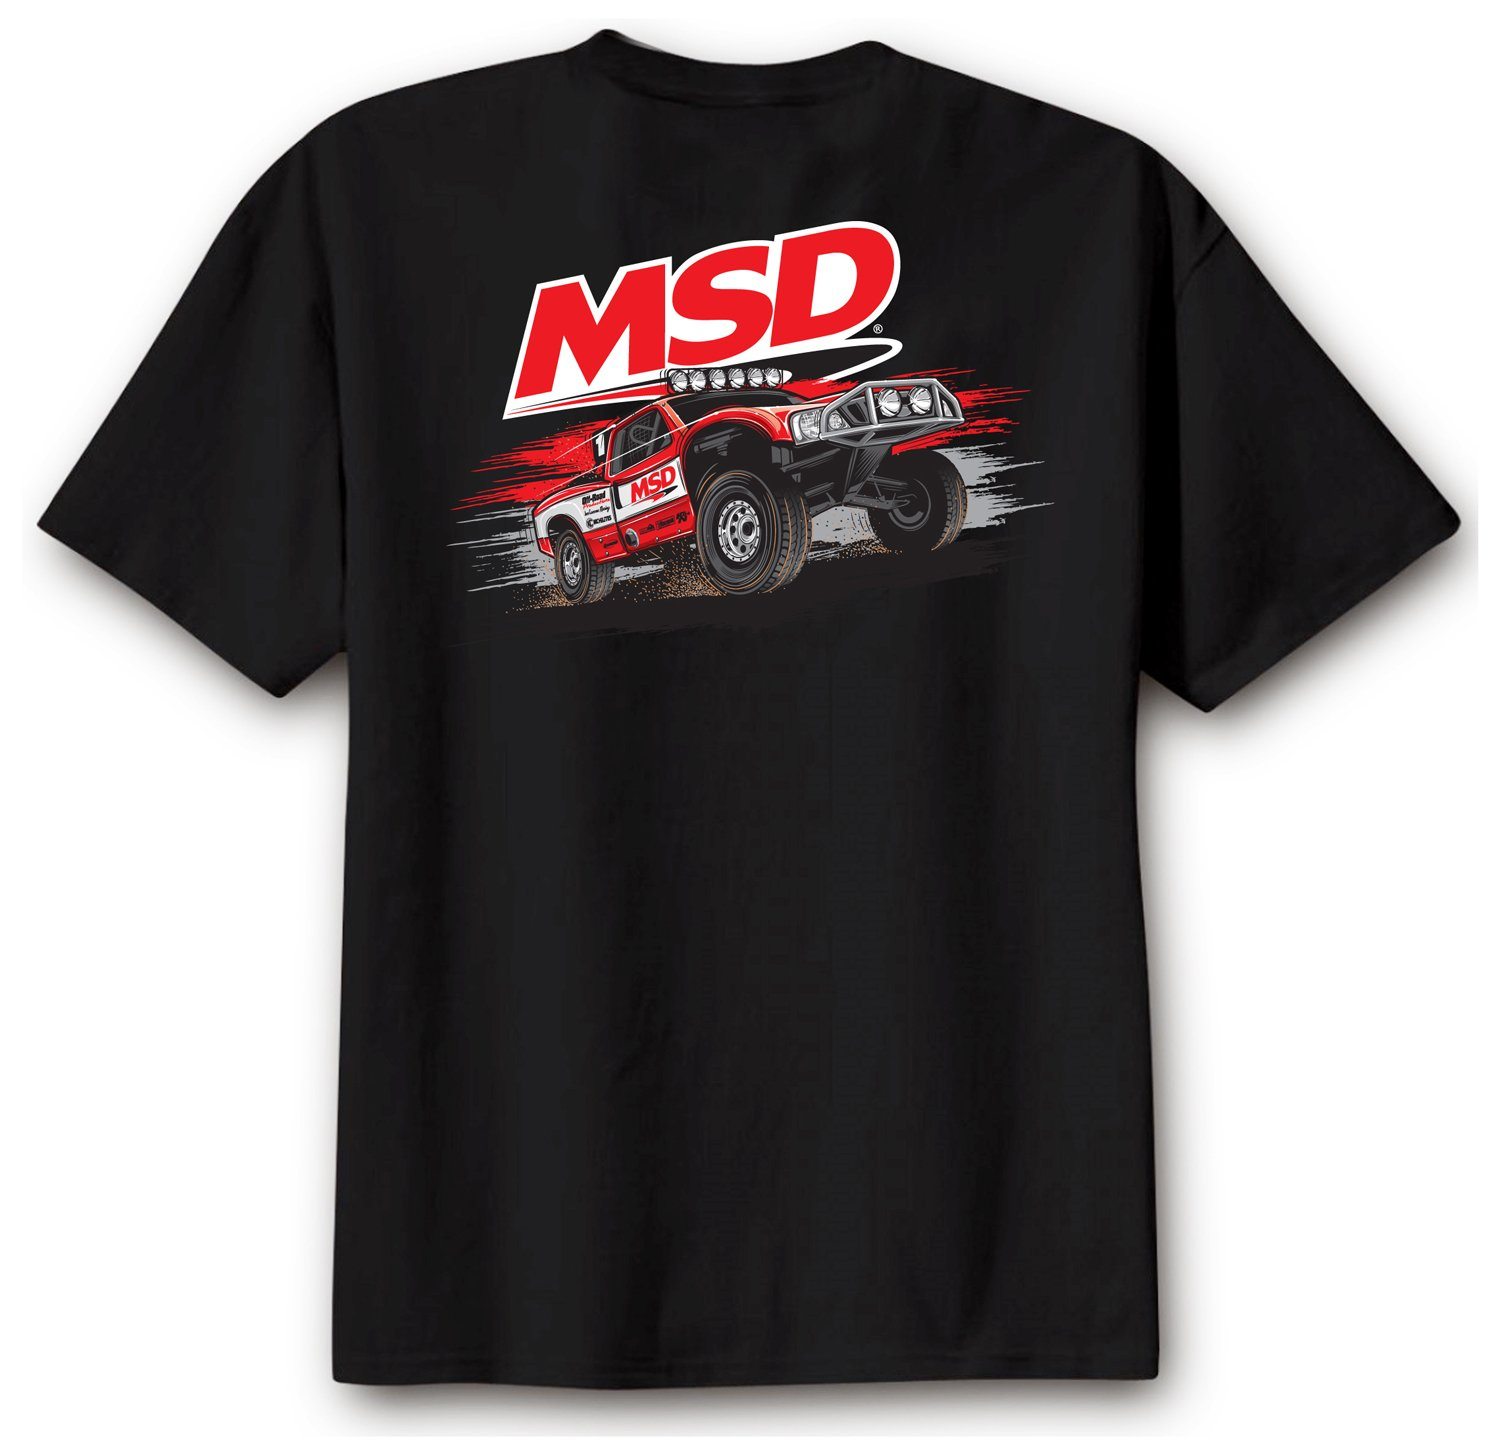 95143 - MSD Off Road T-Shirt, Black, XX-Large Image